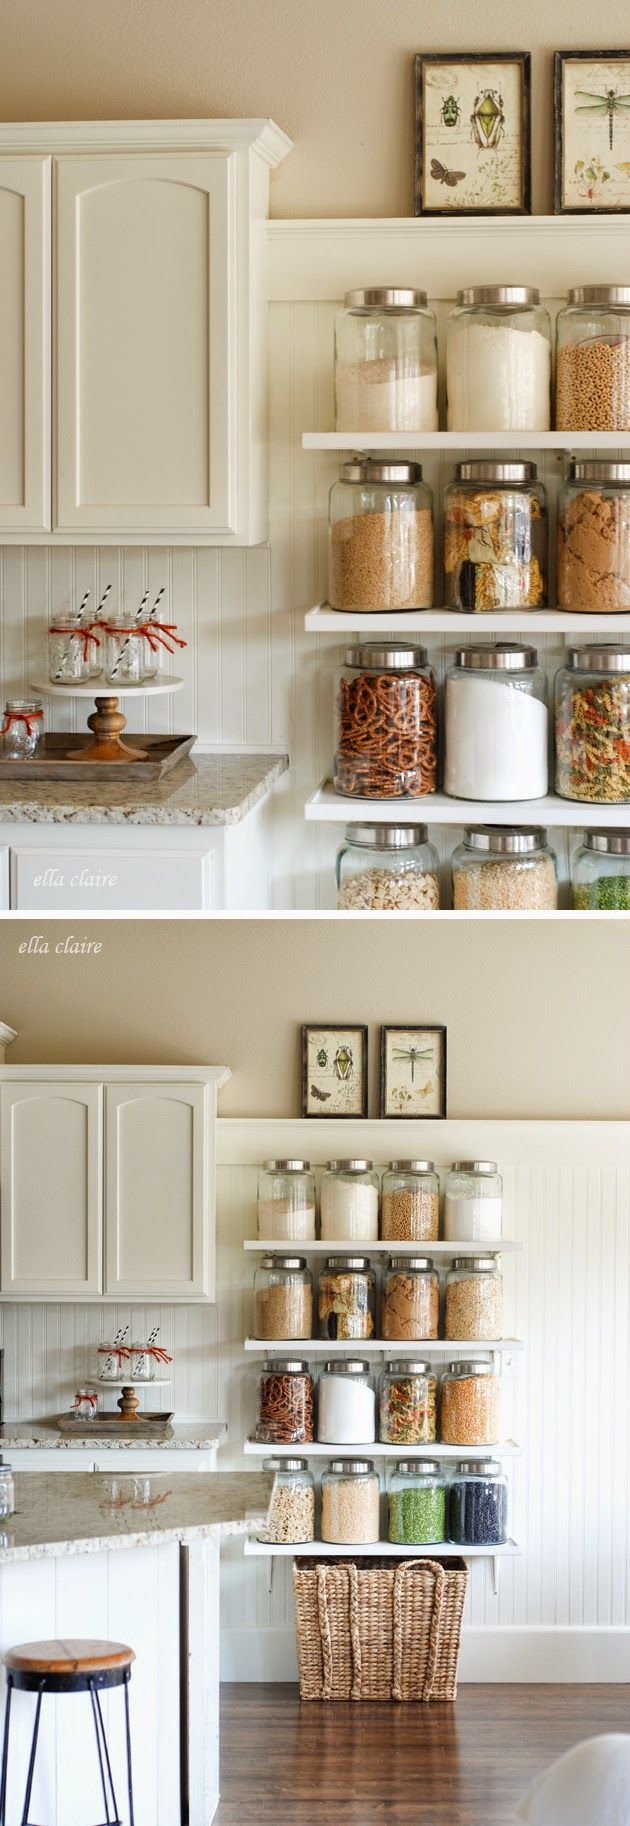 DIY Country Store Kitchen Shelves | Glass canisters, Shelving and ...